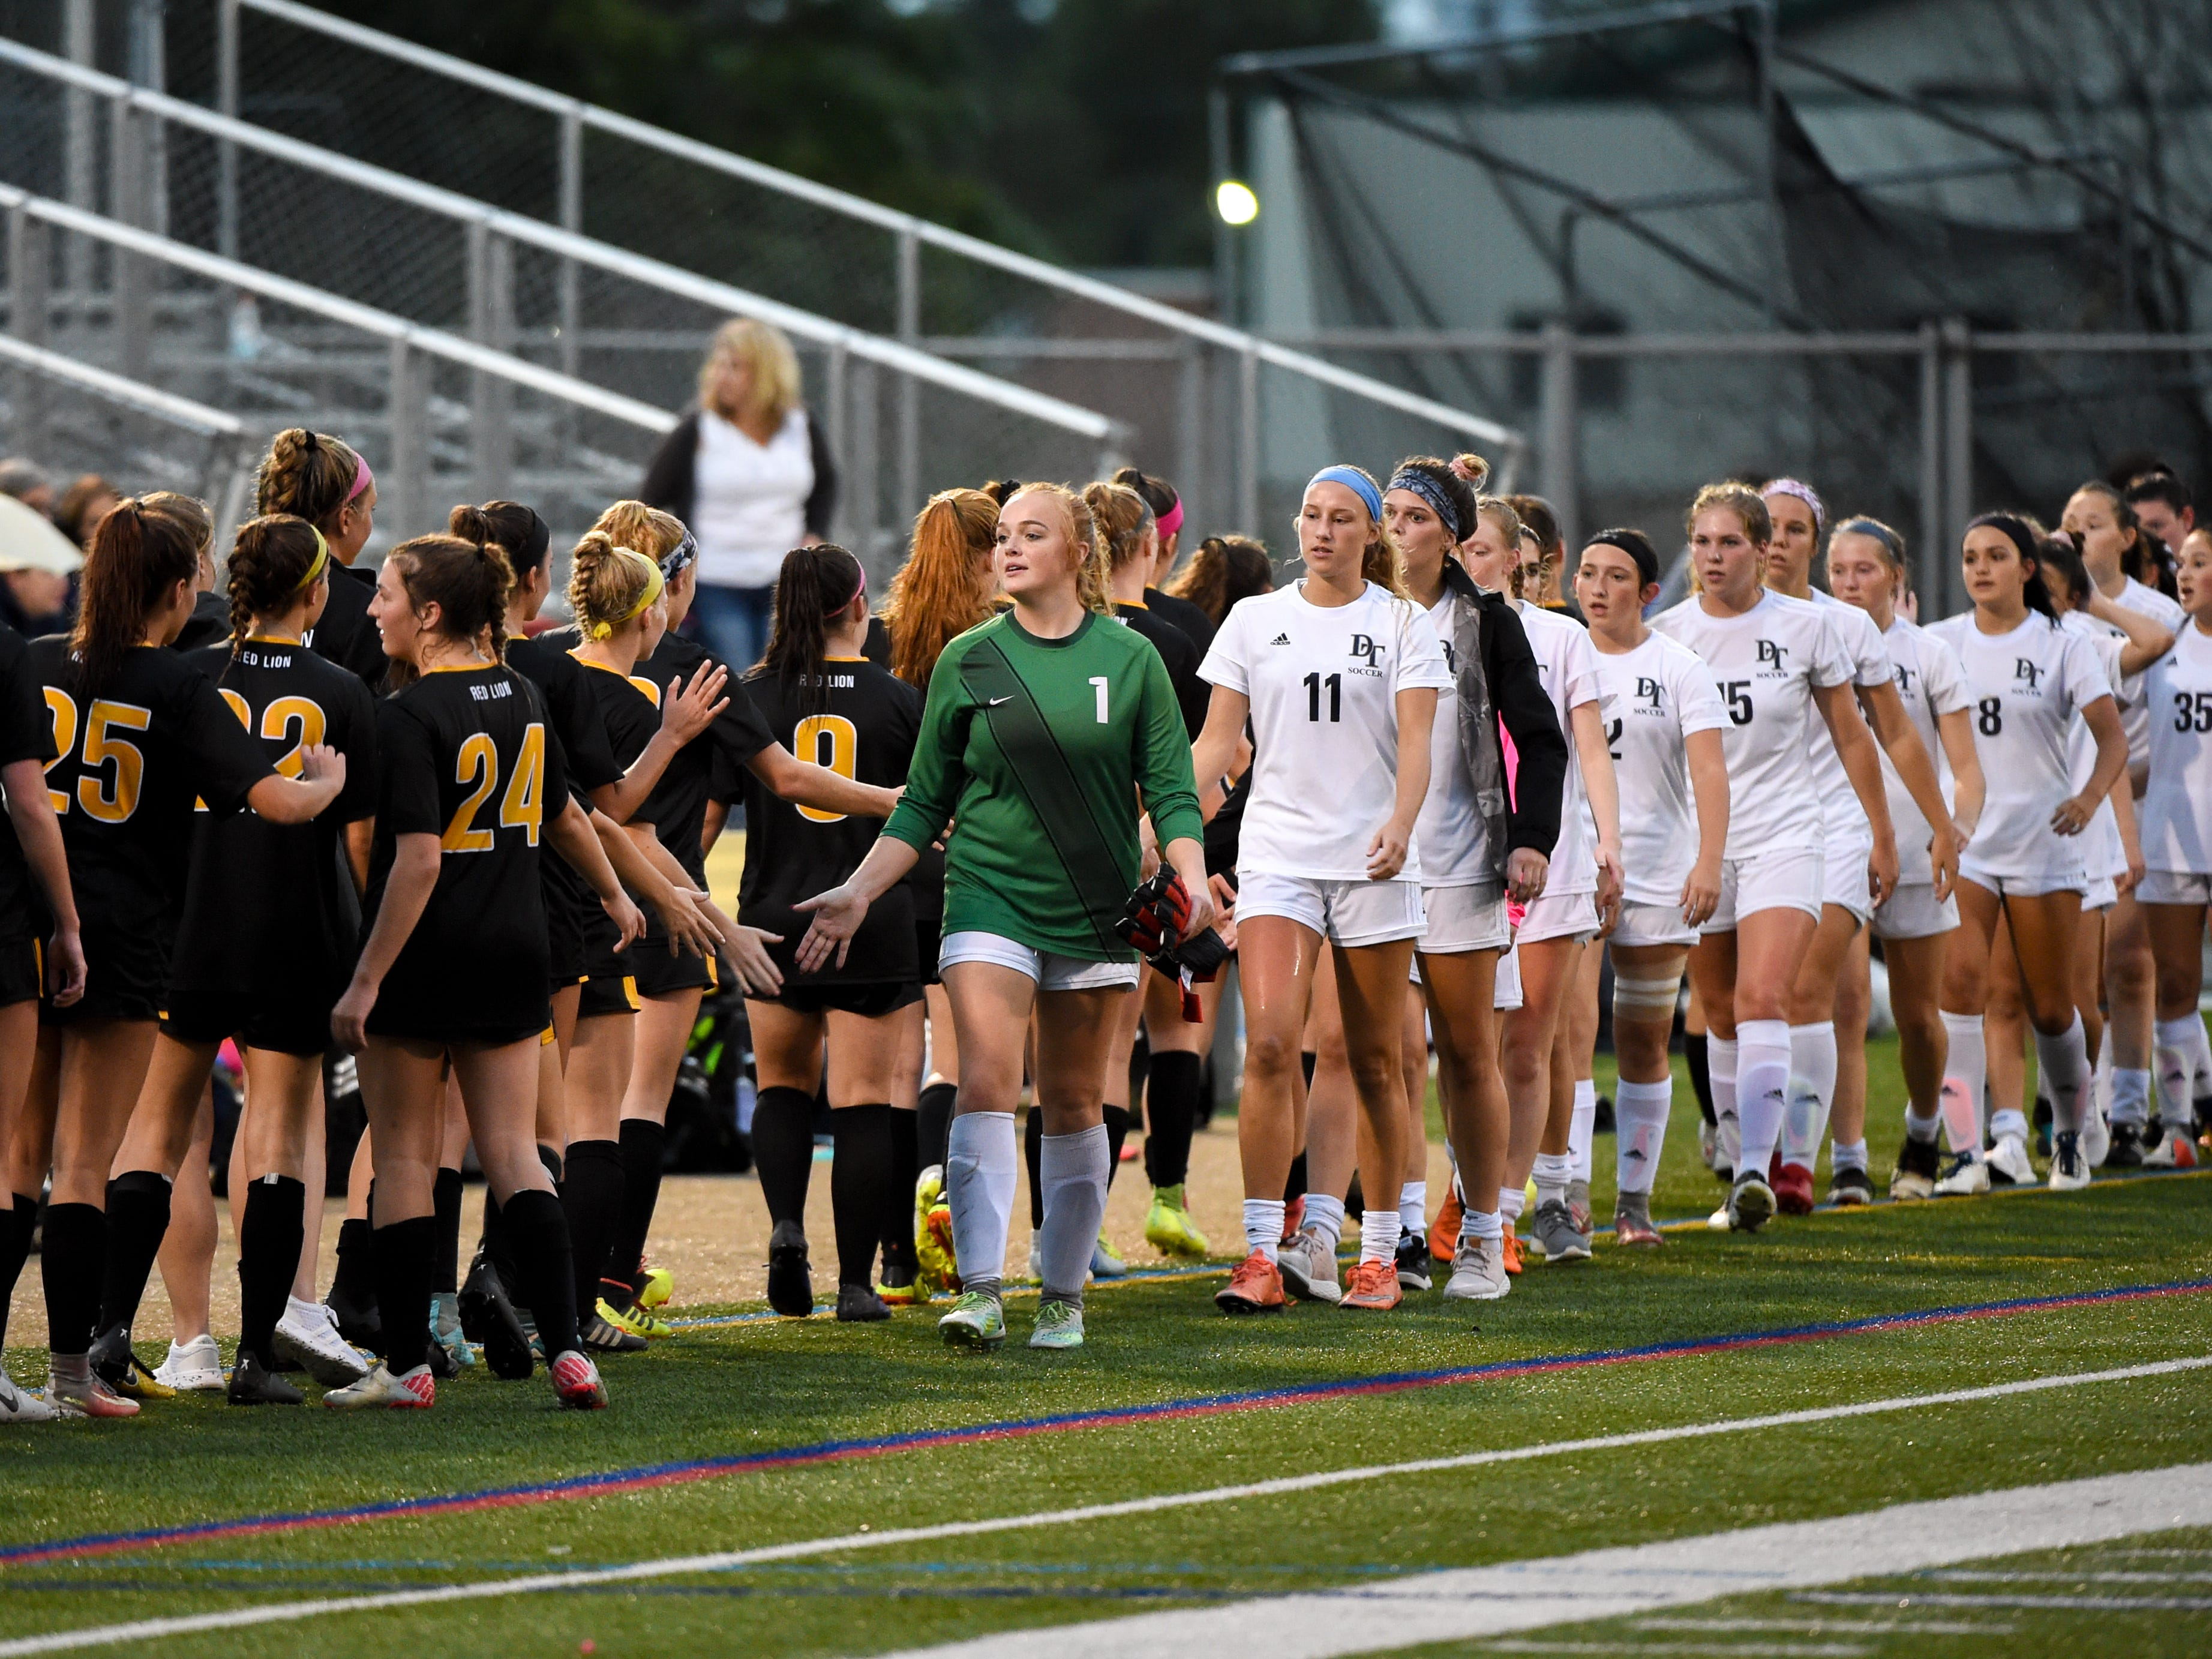 Dallastown and Red Lion players shake hands after a tough game, October 11, 2018. The Lady Lions beat the Wildcats 4-0.